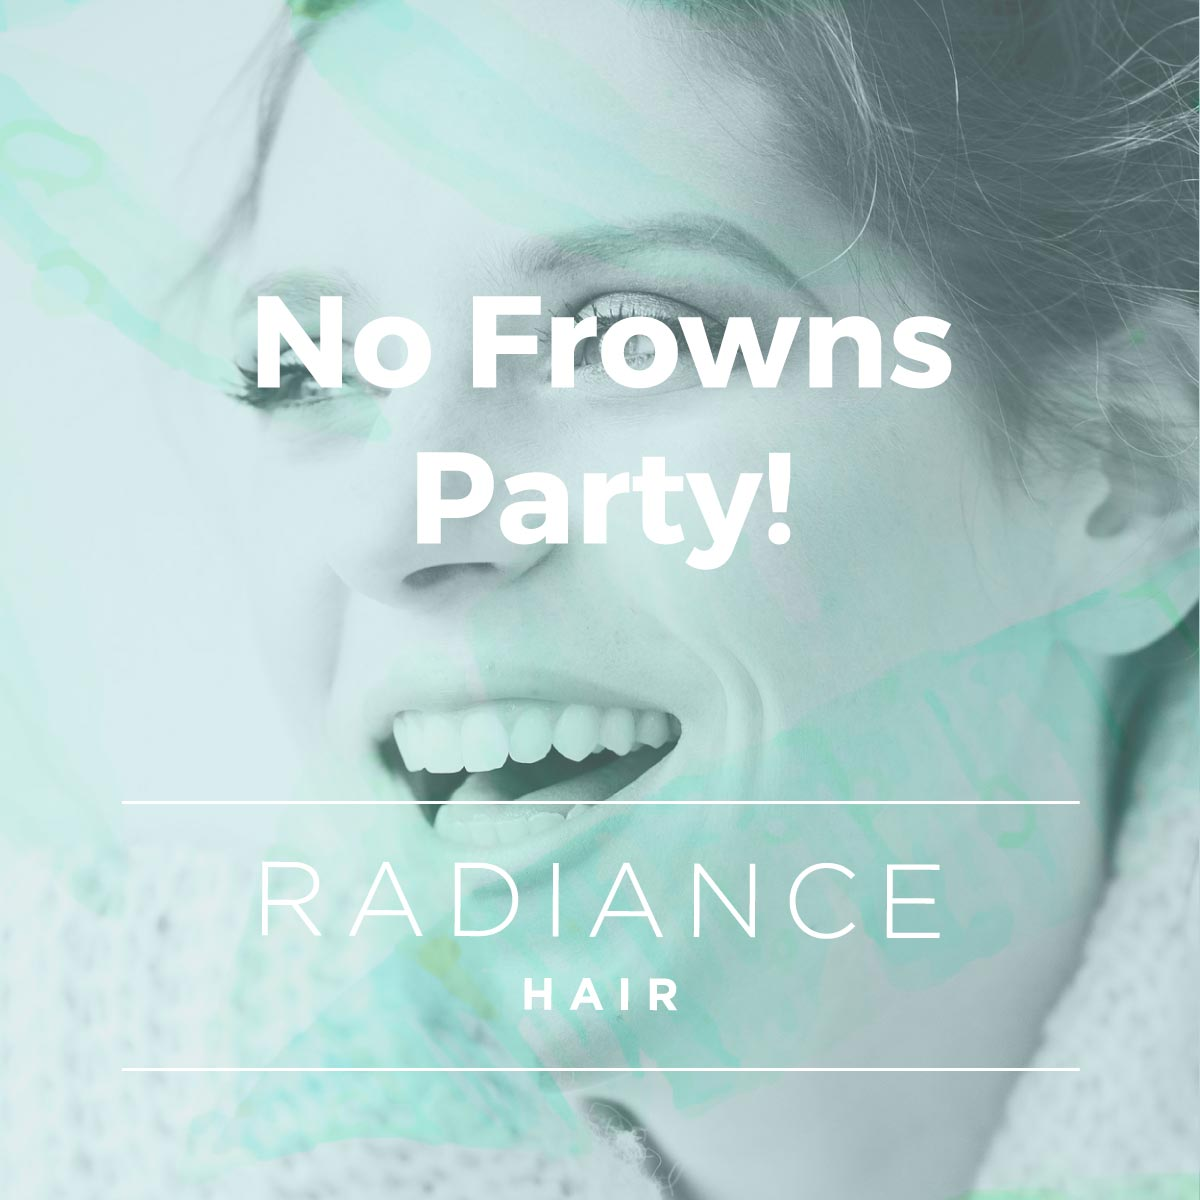 no frowns party